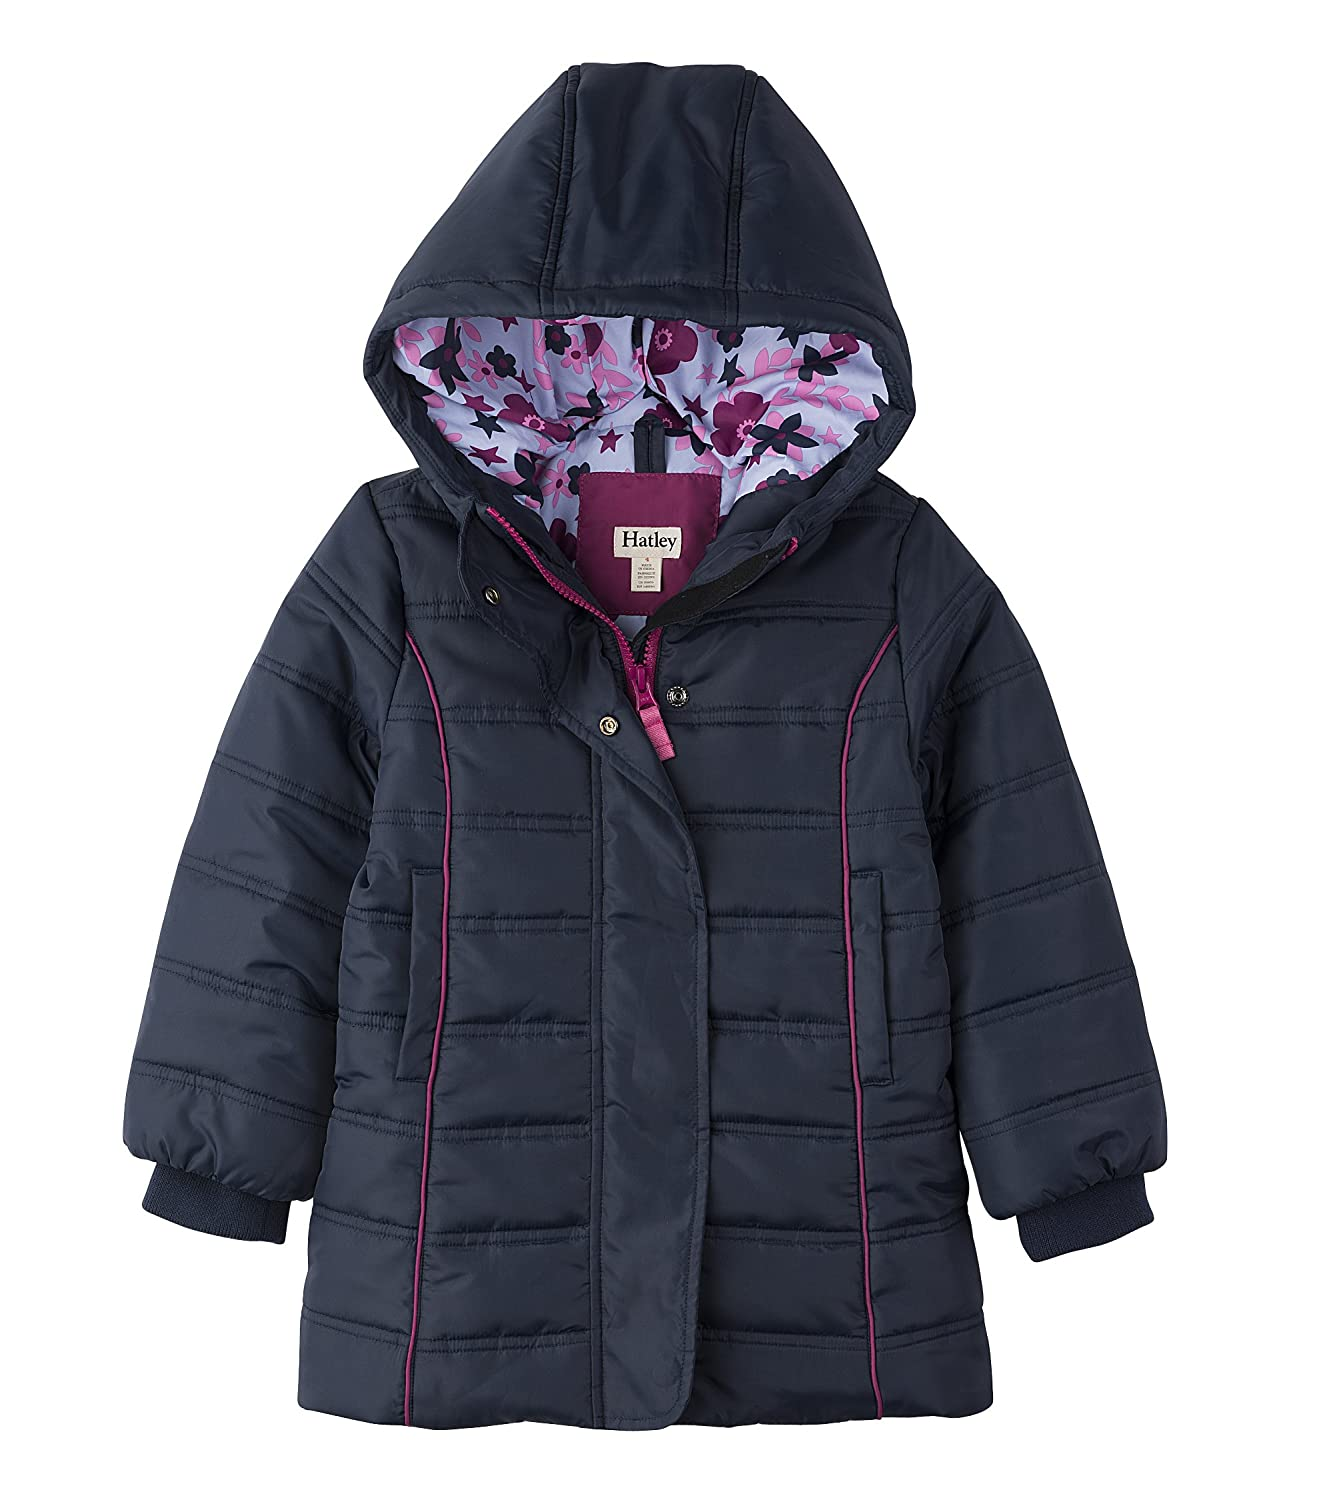 Hatley girls Fitted Puffer Jackets SJ7NAVY318